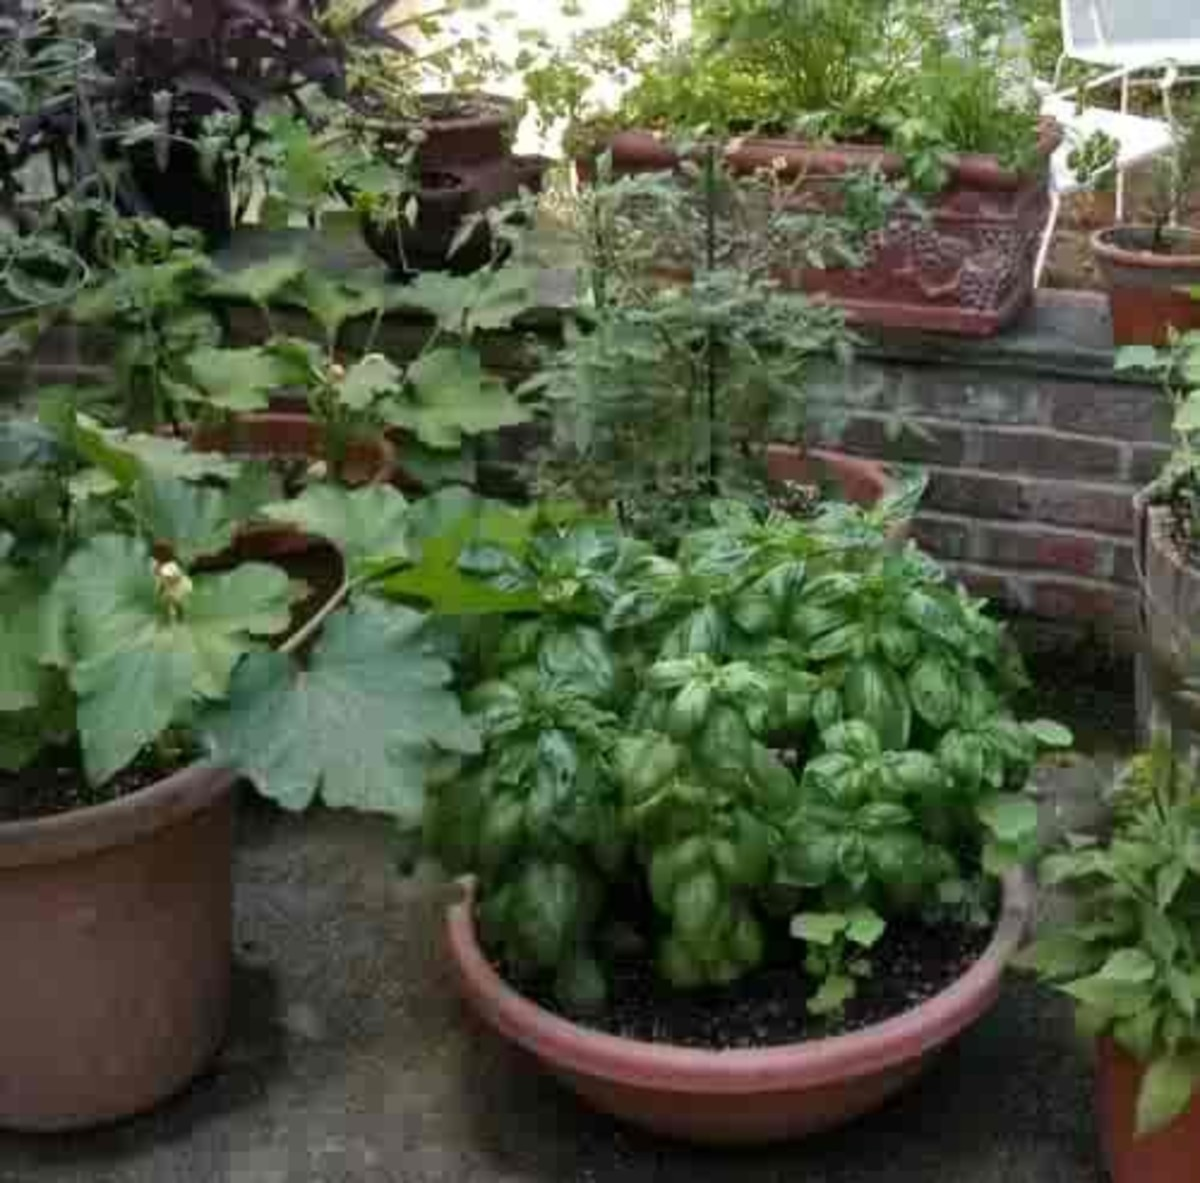 Plant veggies and herbs in containers and pots